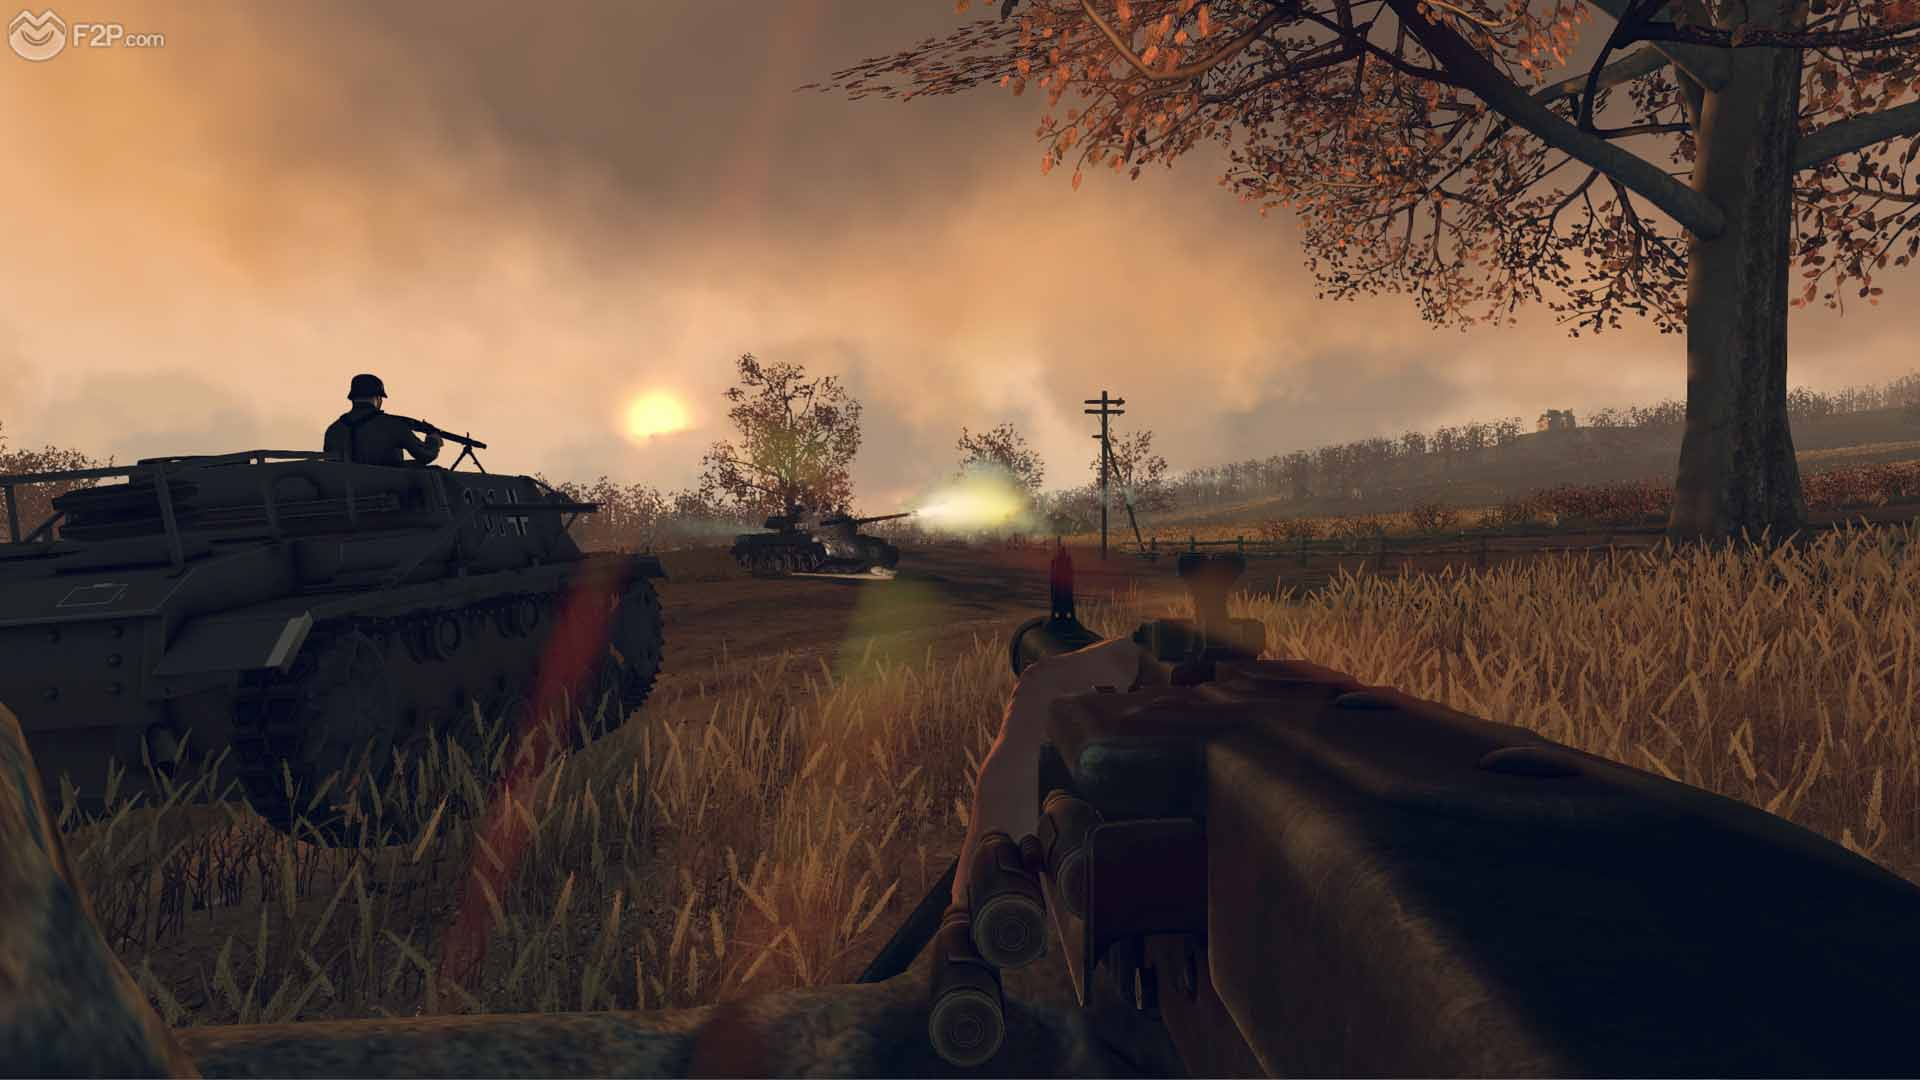 Click image for larger version. Name:	Heroes and Generals (2) copia.jpg Views:	217 Size:	123.1 KB ID:	11484